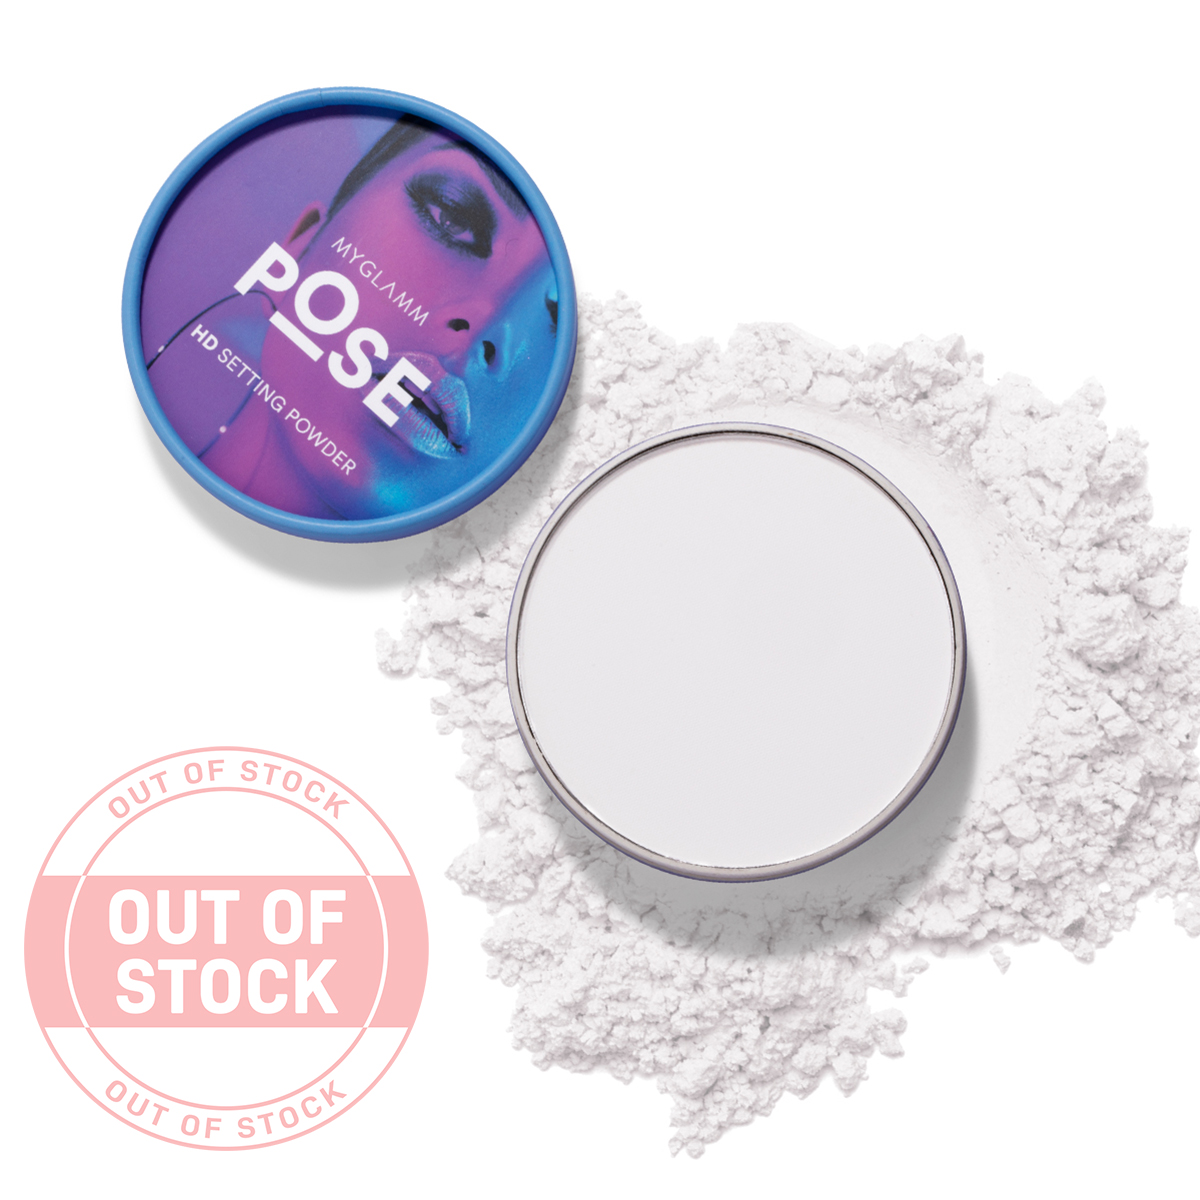 pose-hd-setting-powder-8